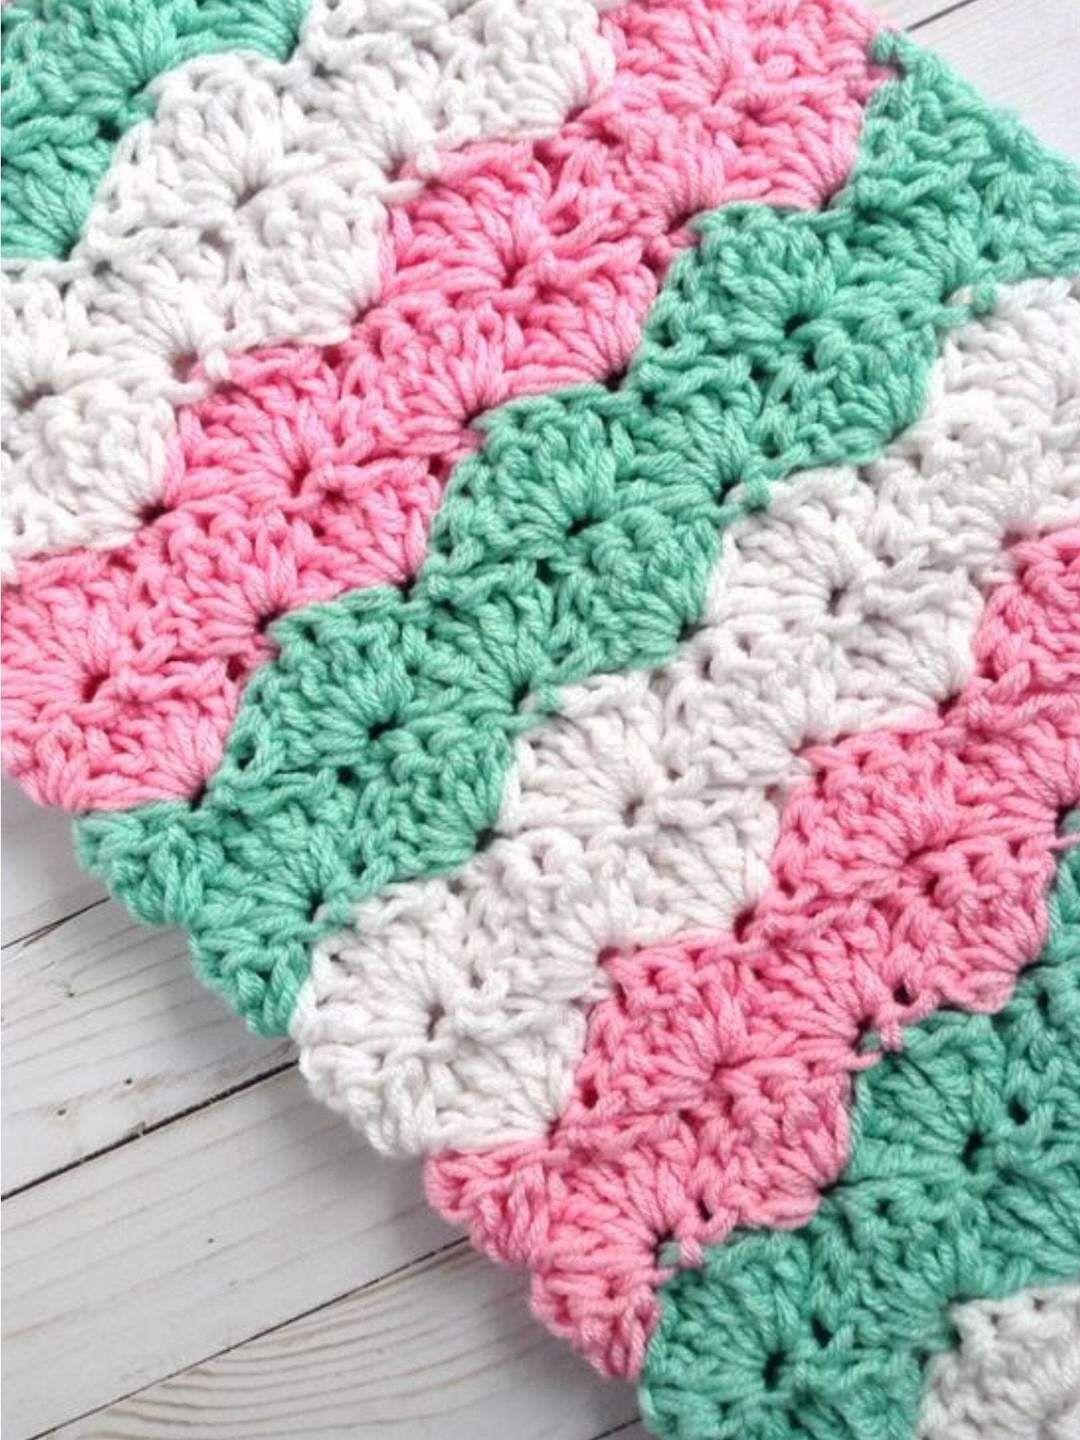 Photo of Baby Girl Crochet Blanket in Pink, Mint, and White Chunky Stripes